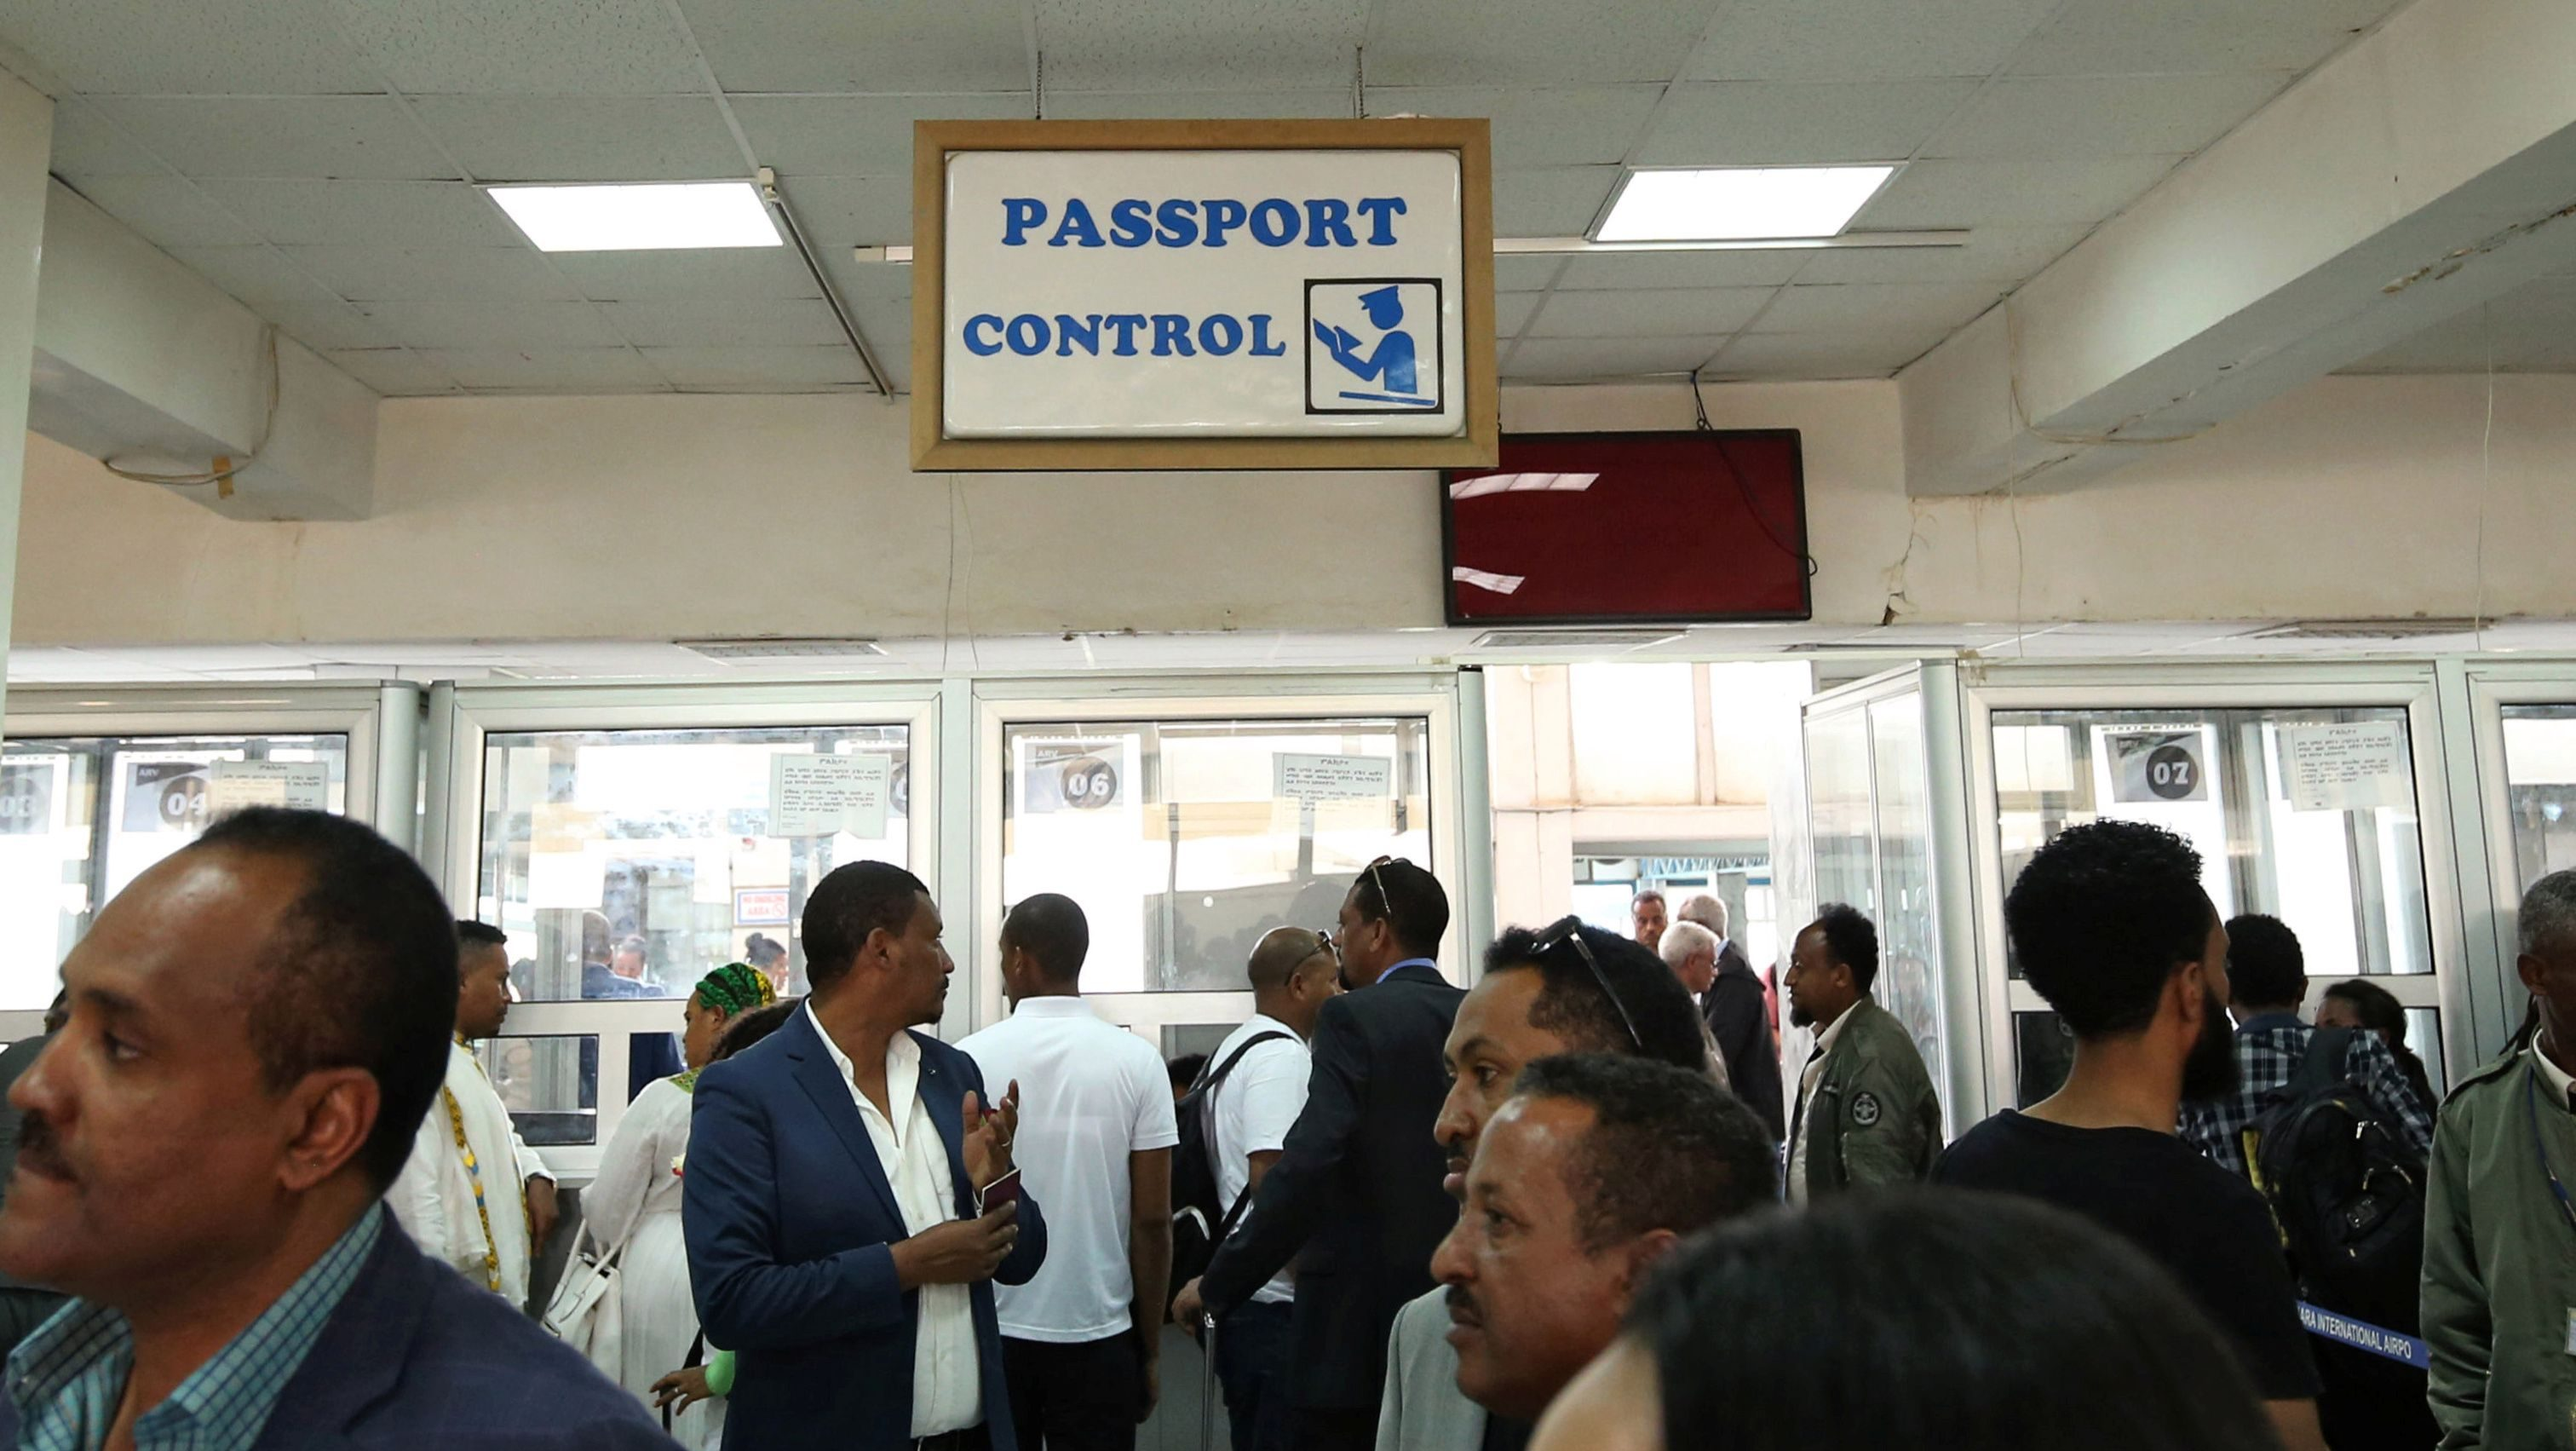 Passengers wait to be processed at the immigration section after arriving at the Asmara International Airport aboard an Ethiopian Airlines flight in Asmara, Eritrea July 18, 2018.